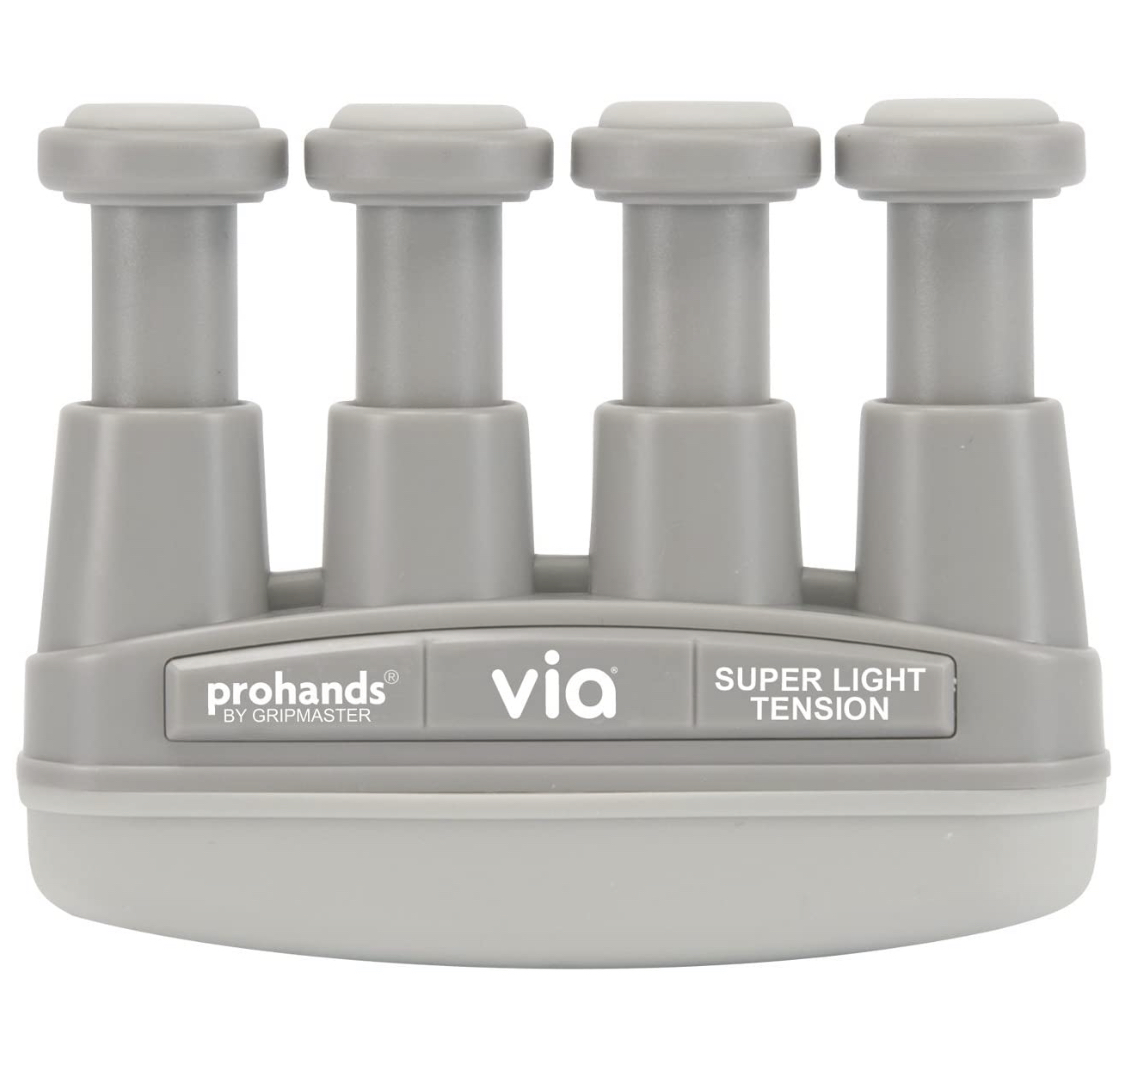 Prohands - VIA Handgrip -SUPER LIGHT tension - Currently out of stock, sorry!